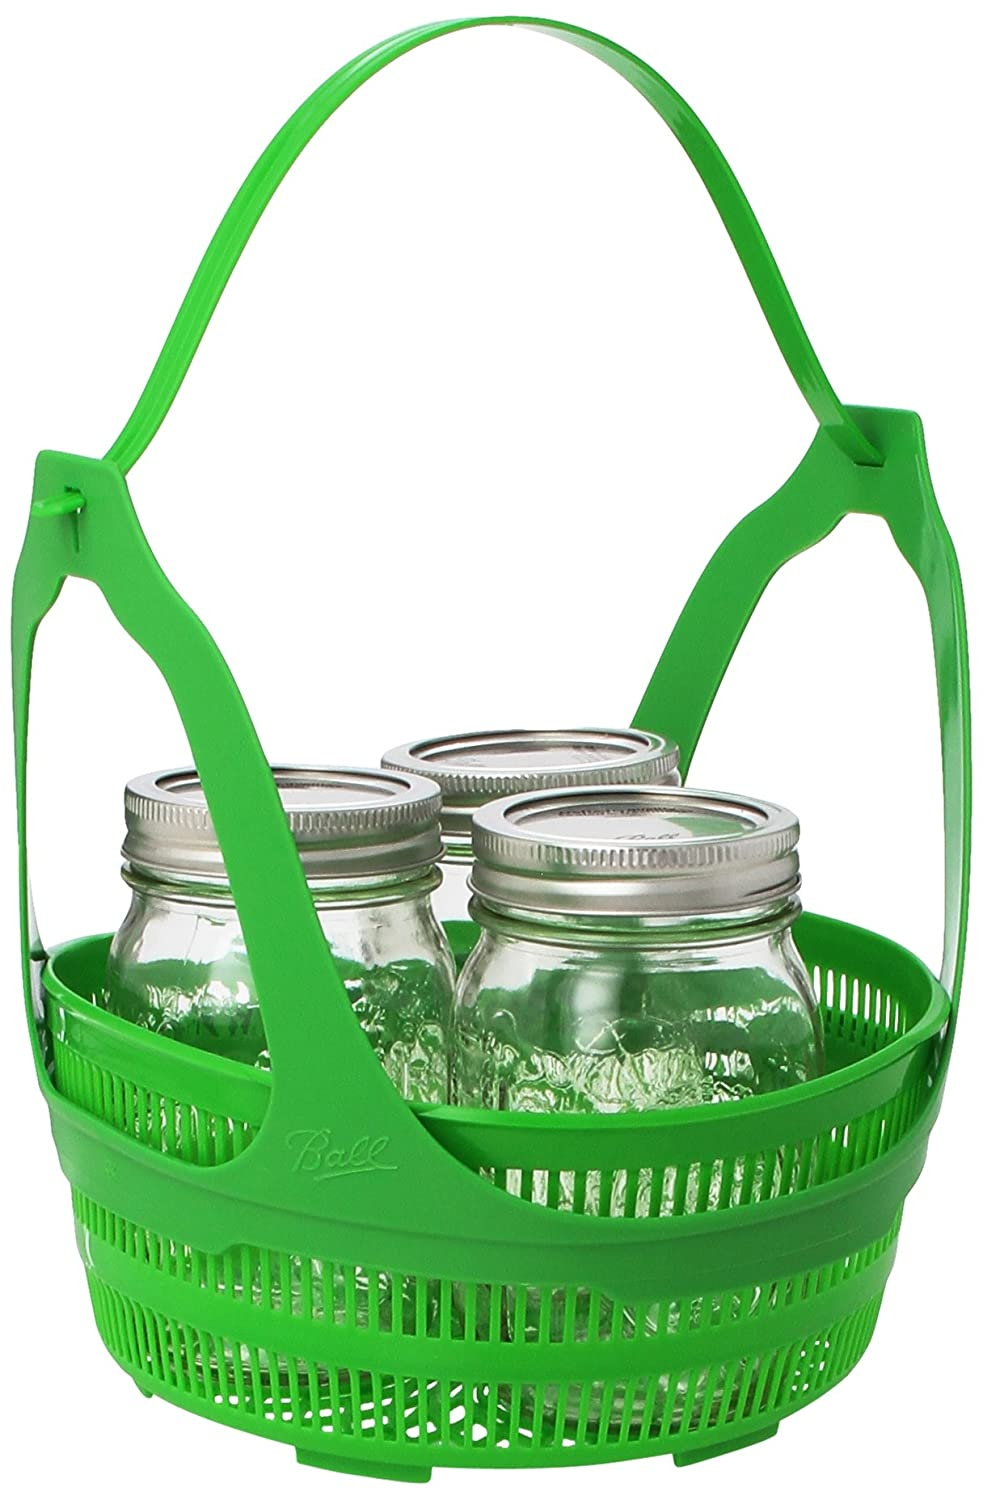 Ball® Home Canning Discovery Kit (by Jarden Home Brands) 1440010790